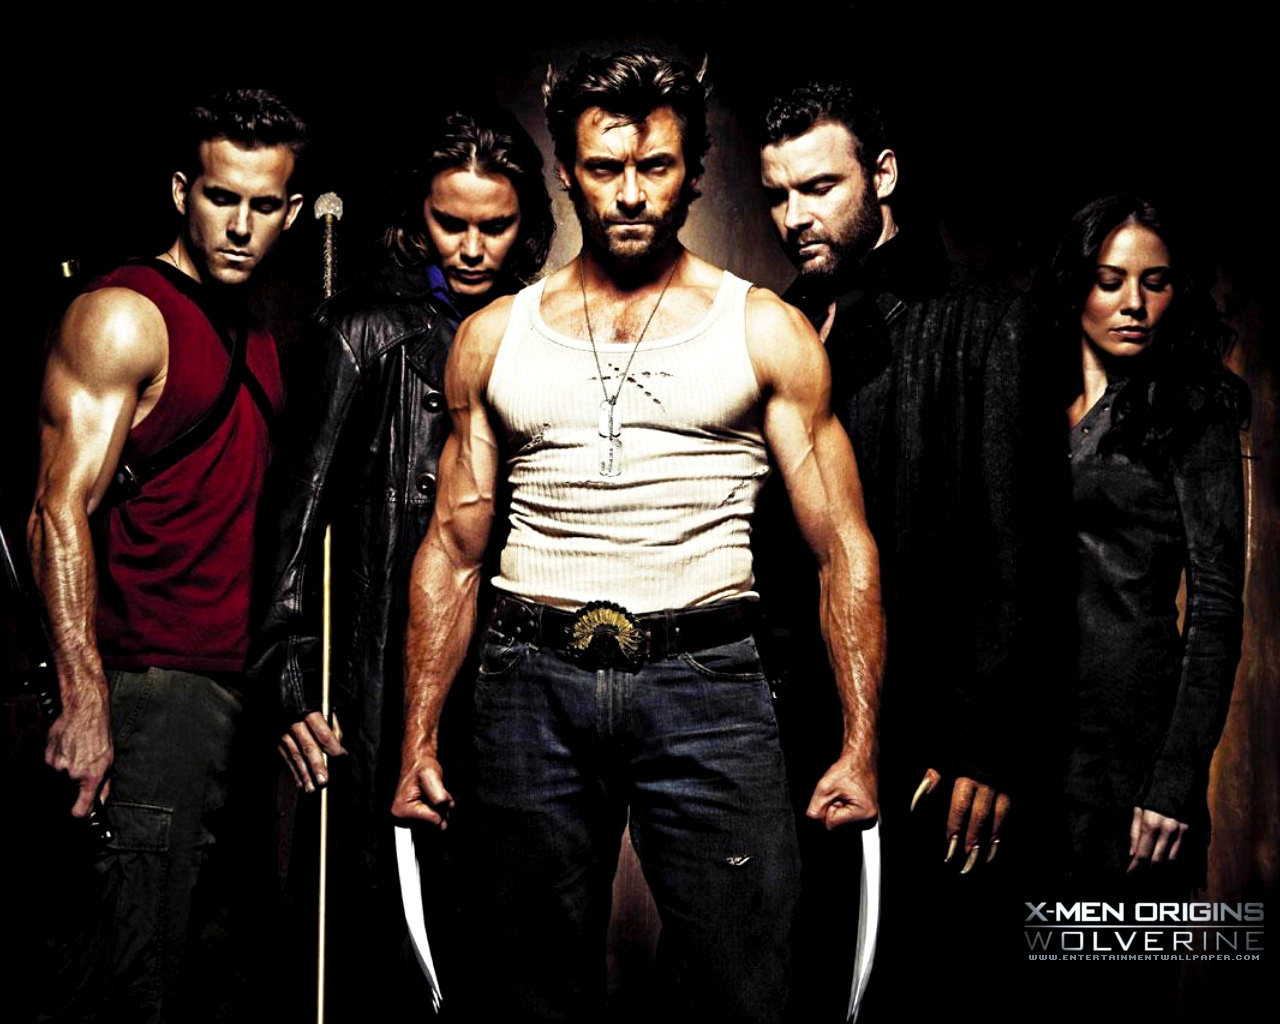 X-Men Origins: Wolverine 2009 best movie 2011 X Men Origins Wolverine 2009 Hugh Jackman Movie 1280x1024 Movie-index.com